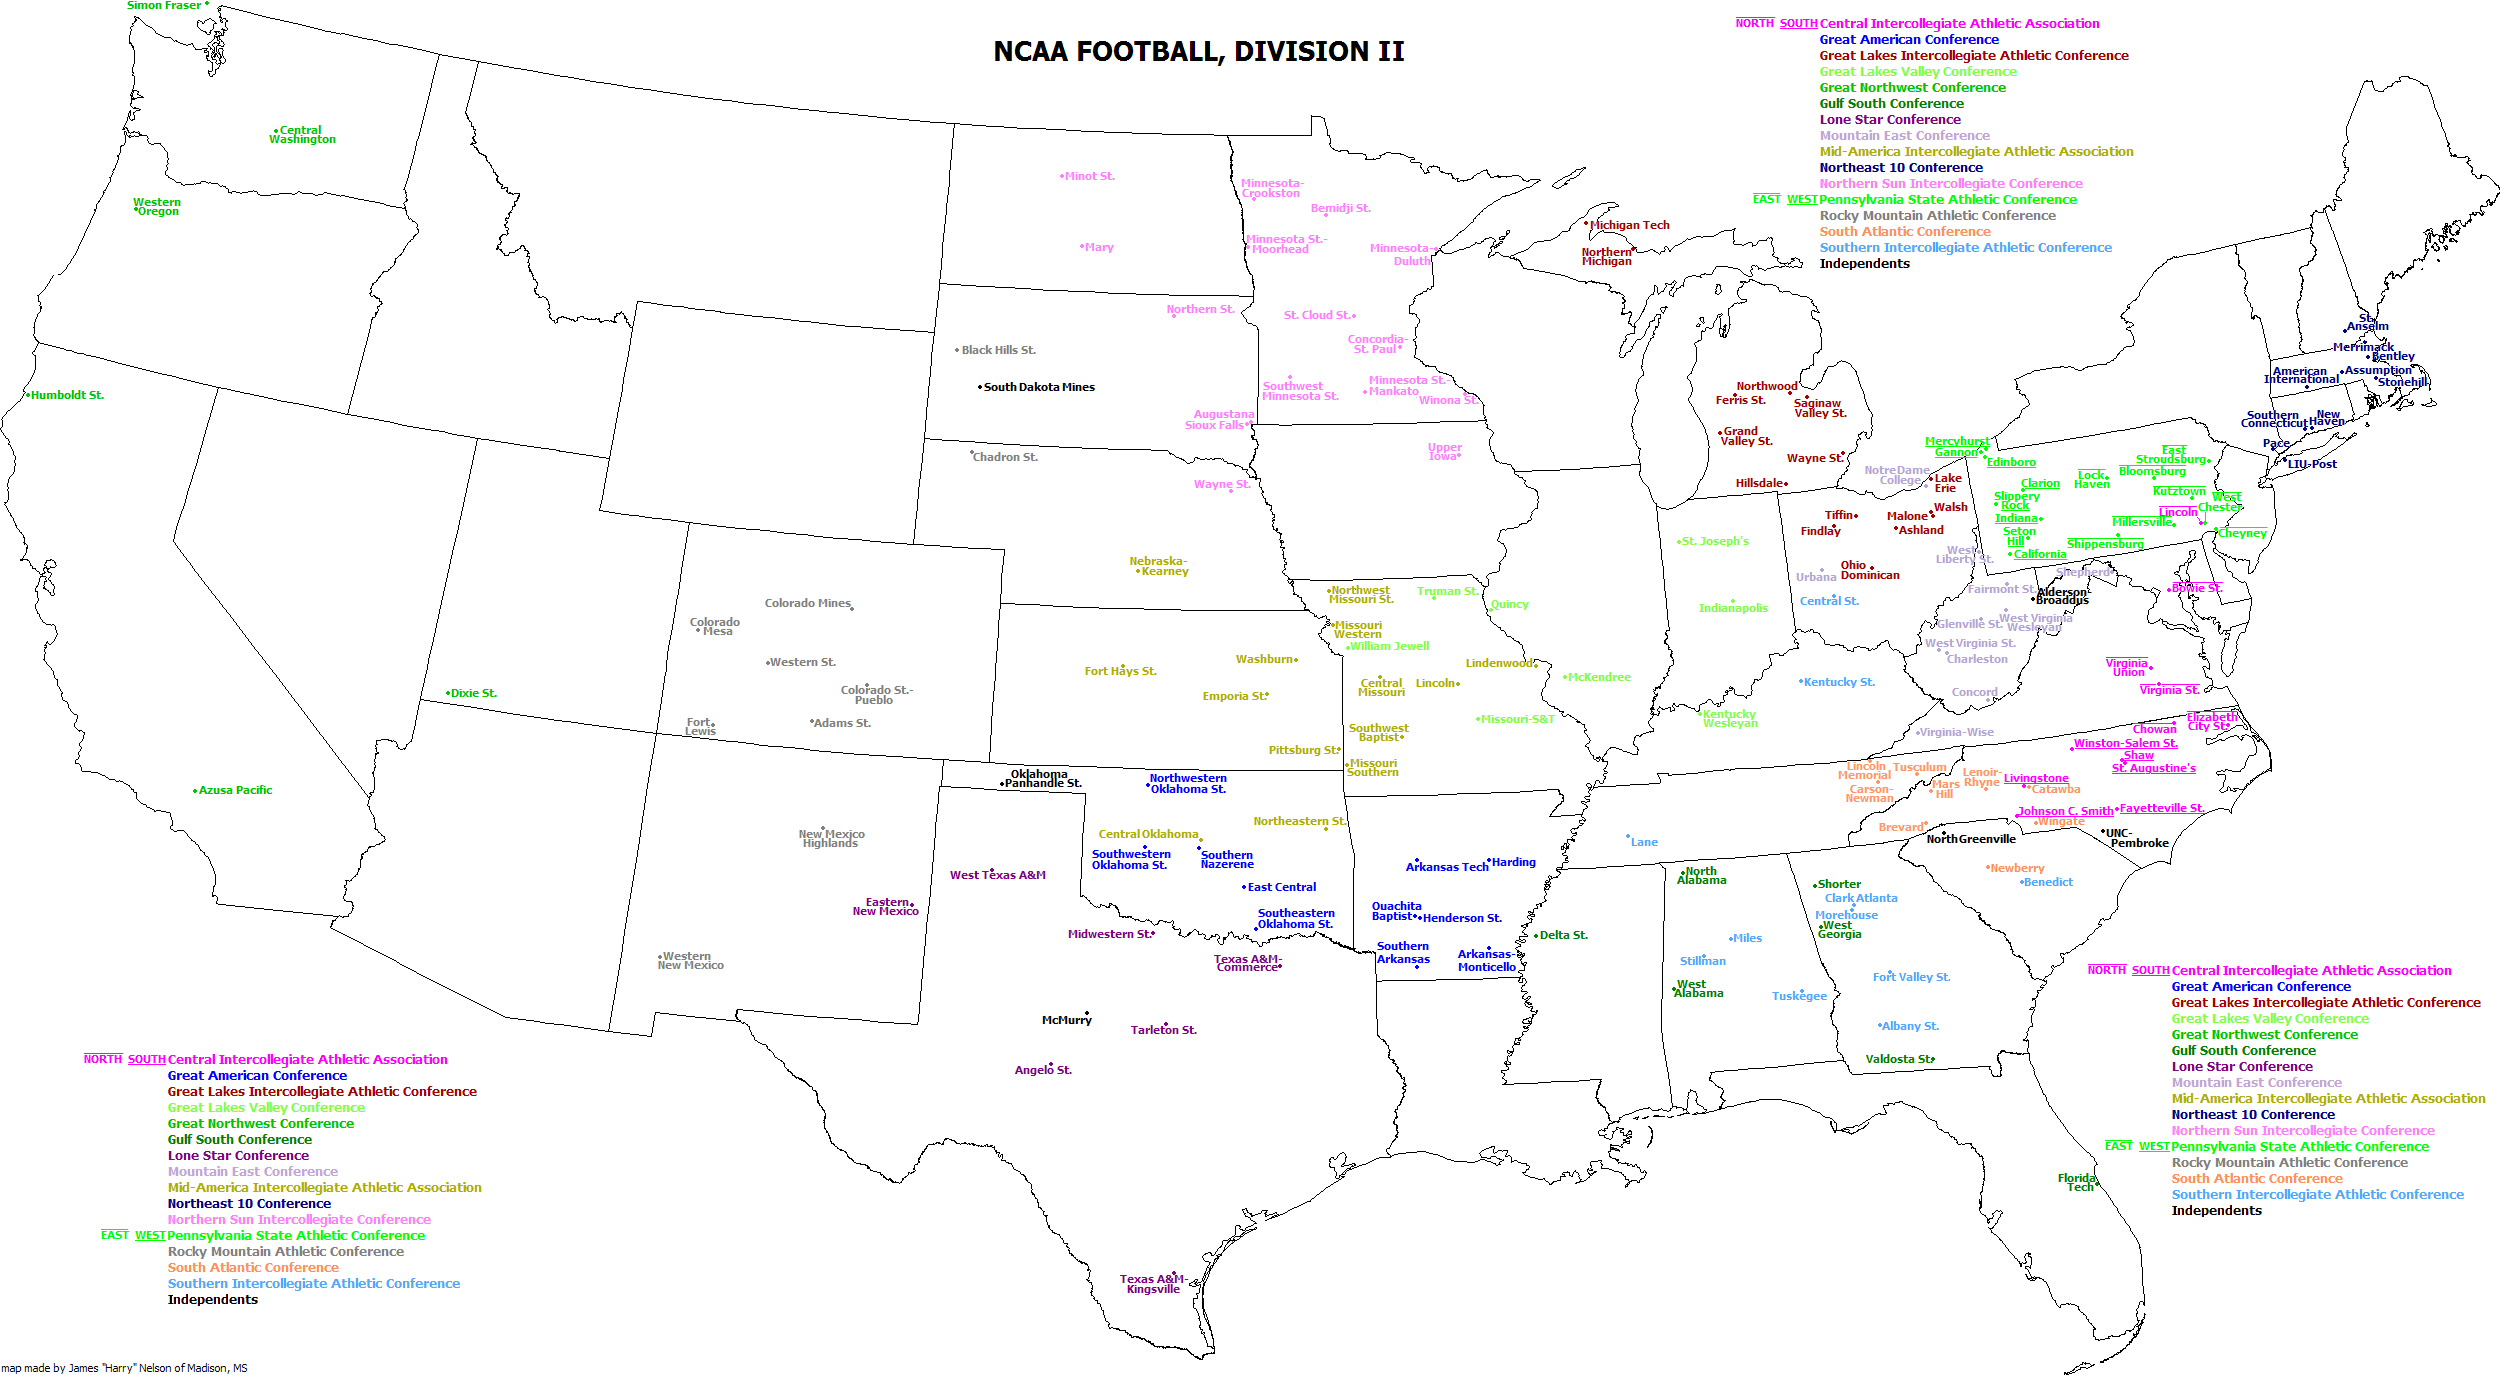 List of NCAA Division II football programs - Wikipedia